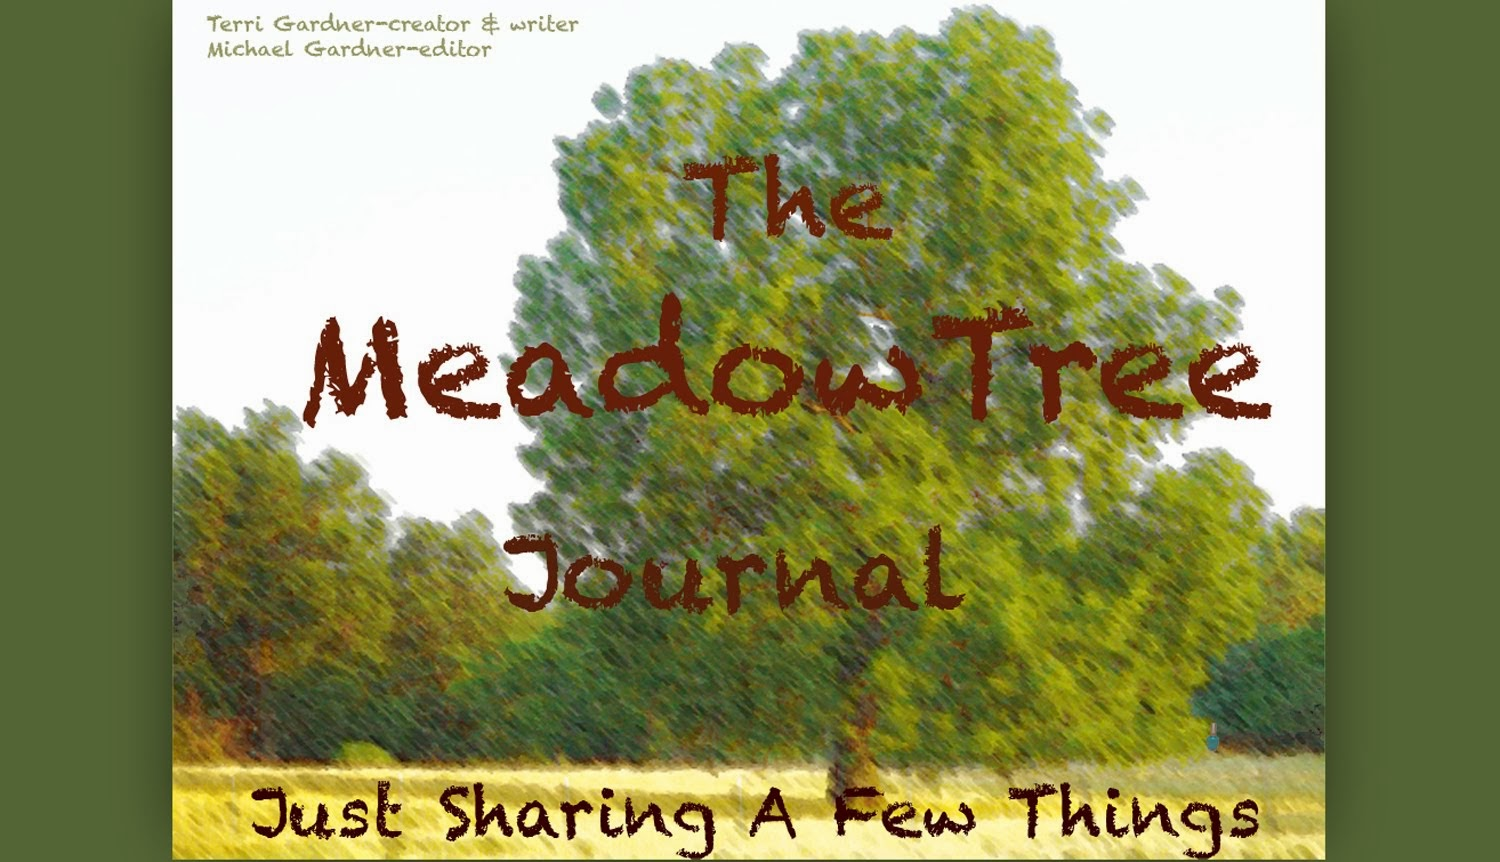 The MeadowTree Journal